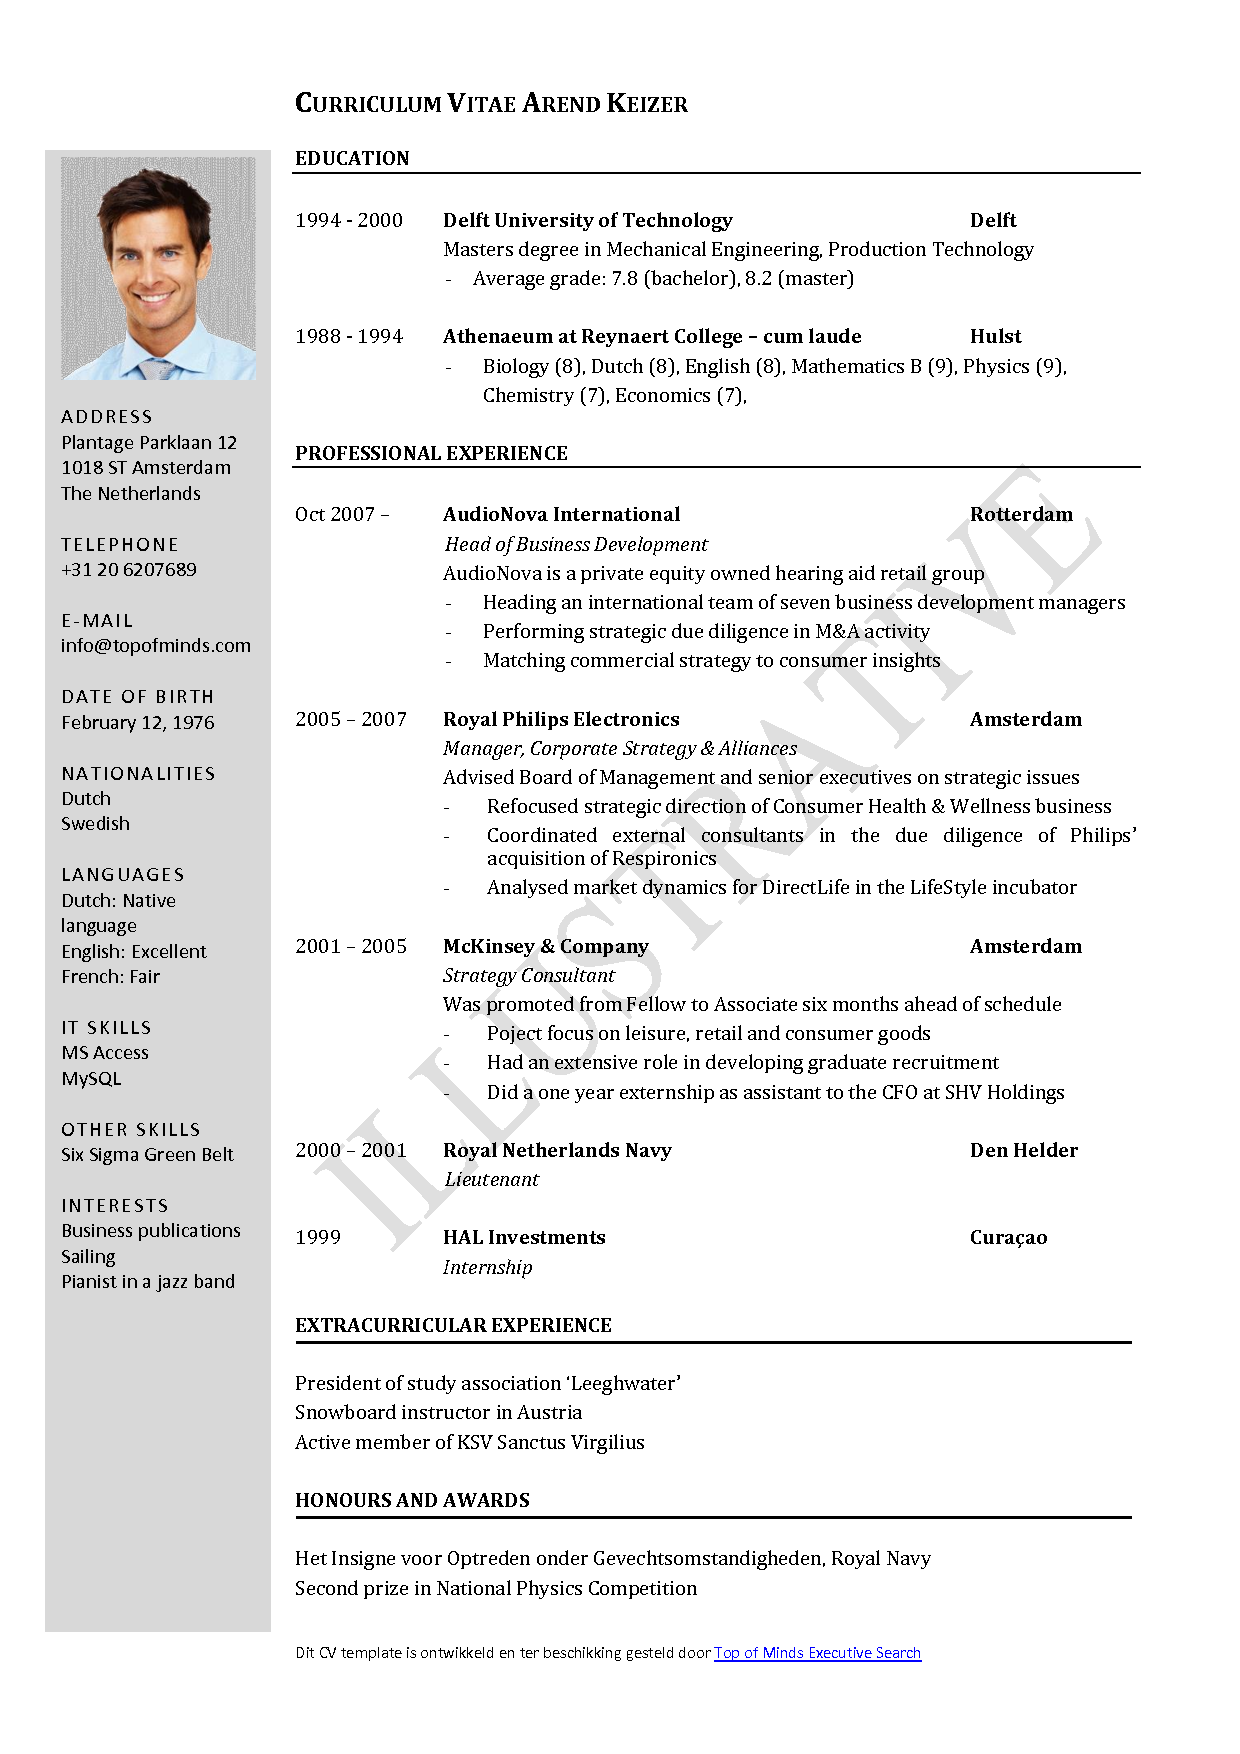 free curriculum vitae template word | download cv template | when ... - Format Resume Examples